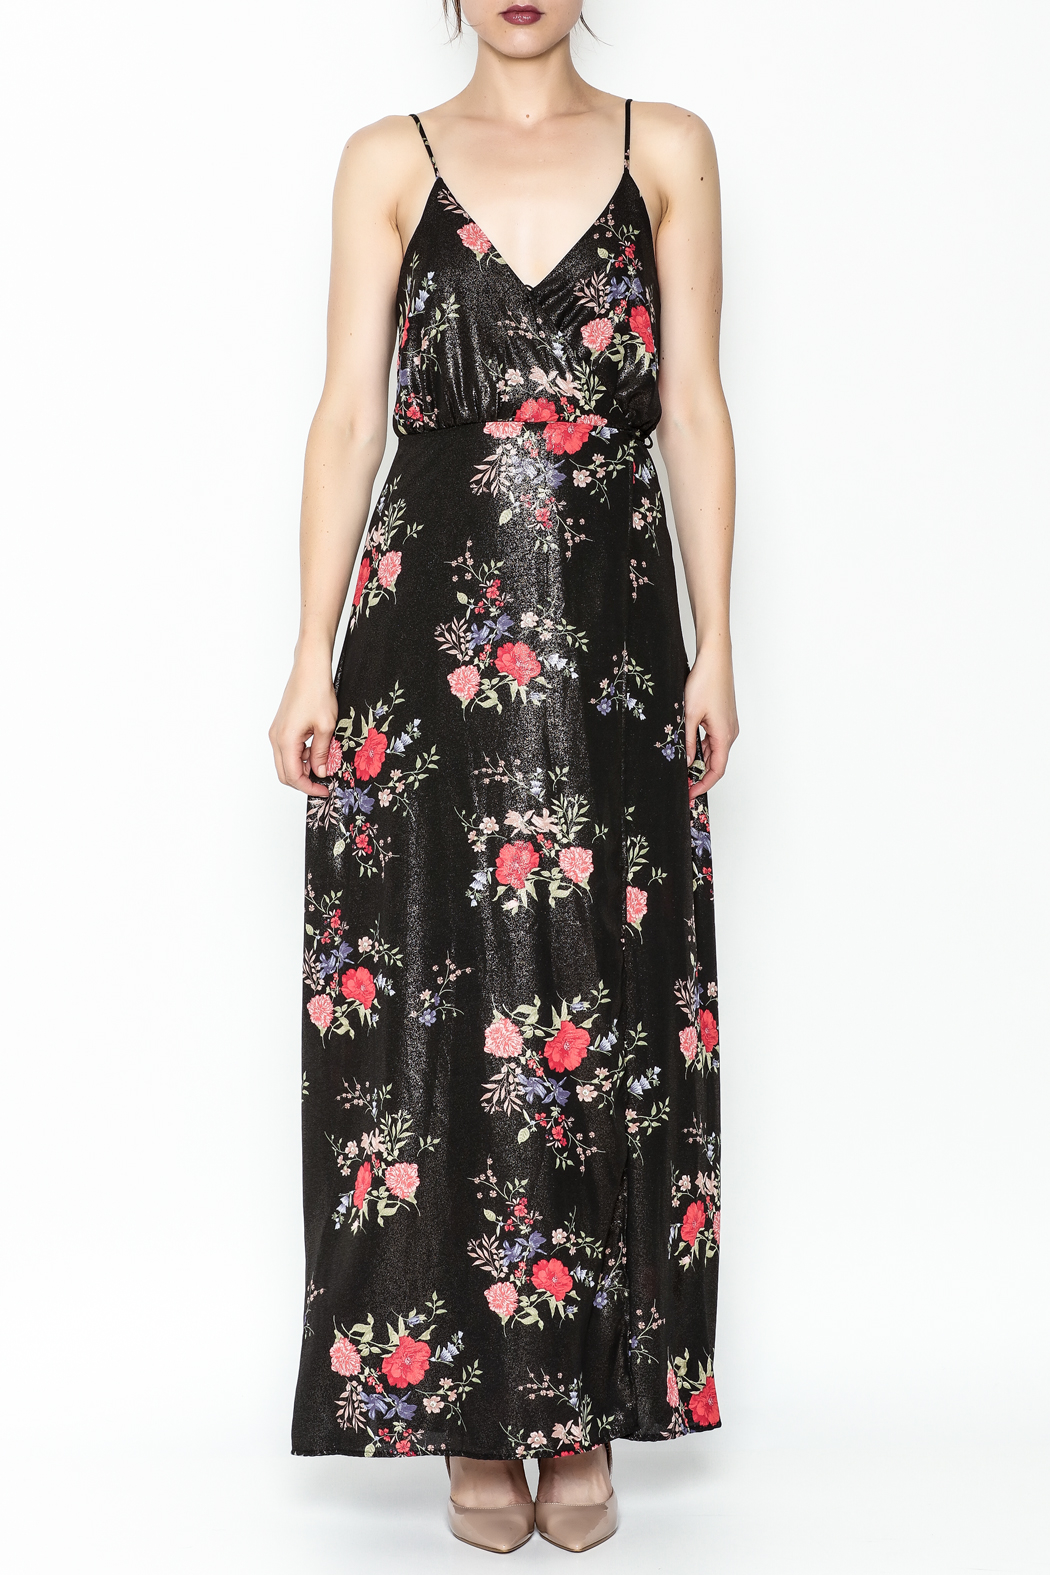 honey belle Floral Metallic Maxi Dress - Front Full Image